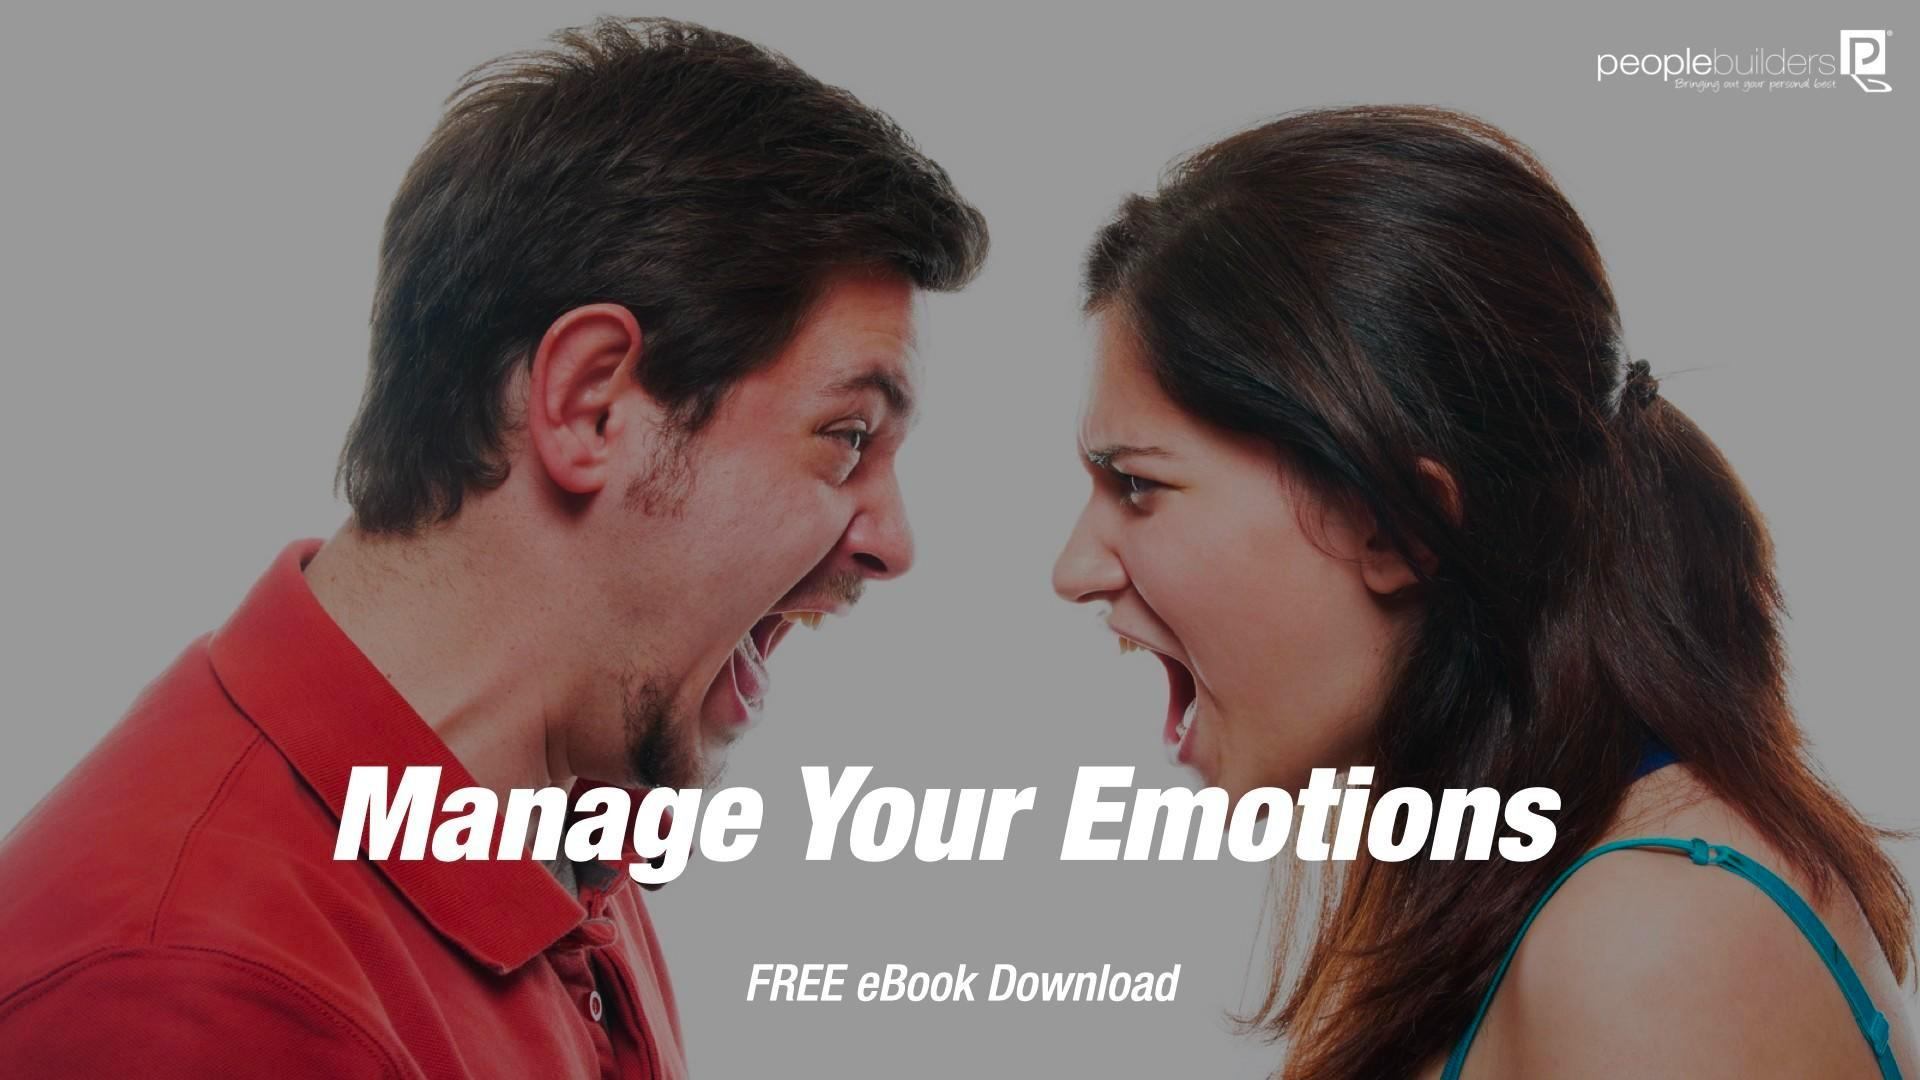 Cover for Manage Your Emotions free Ebook showing a man and woman violently arguing because they cannot manage their emotions.